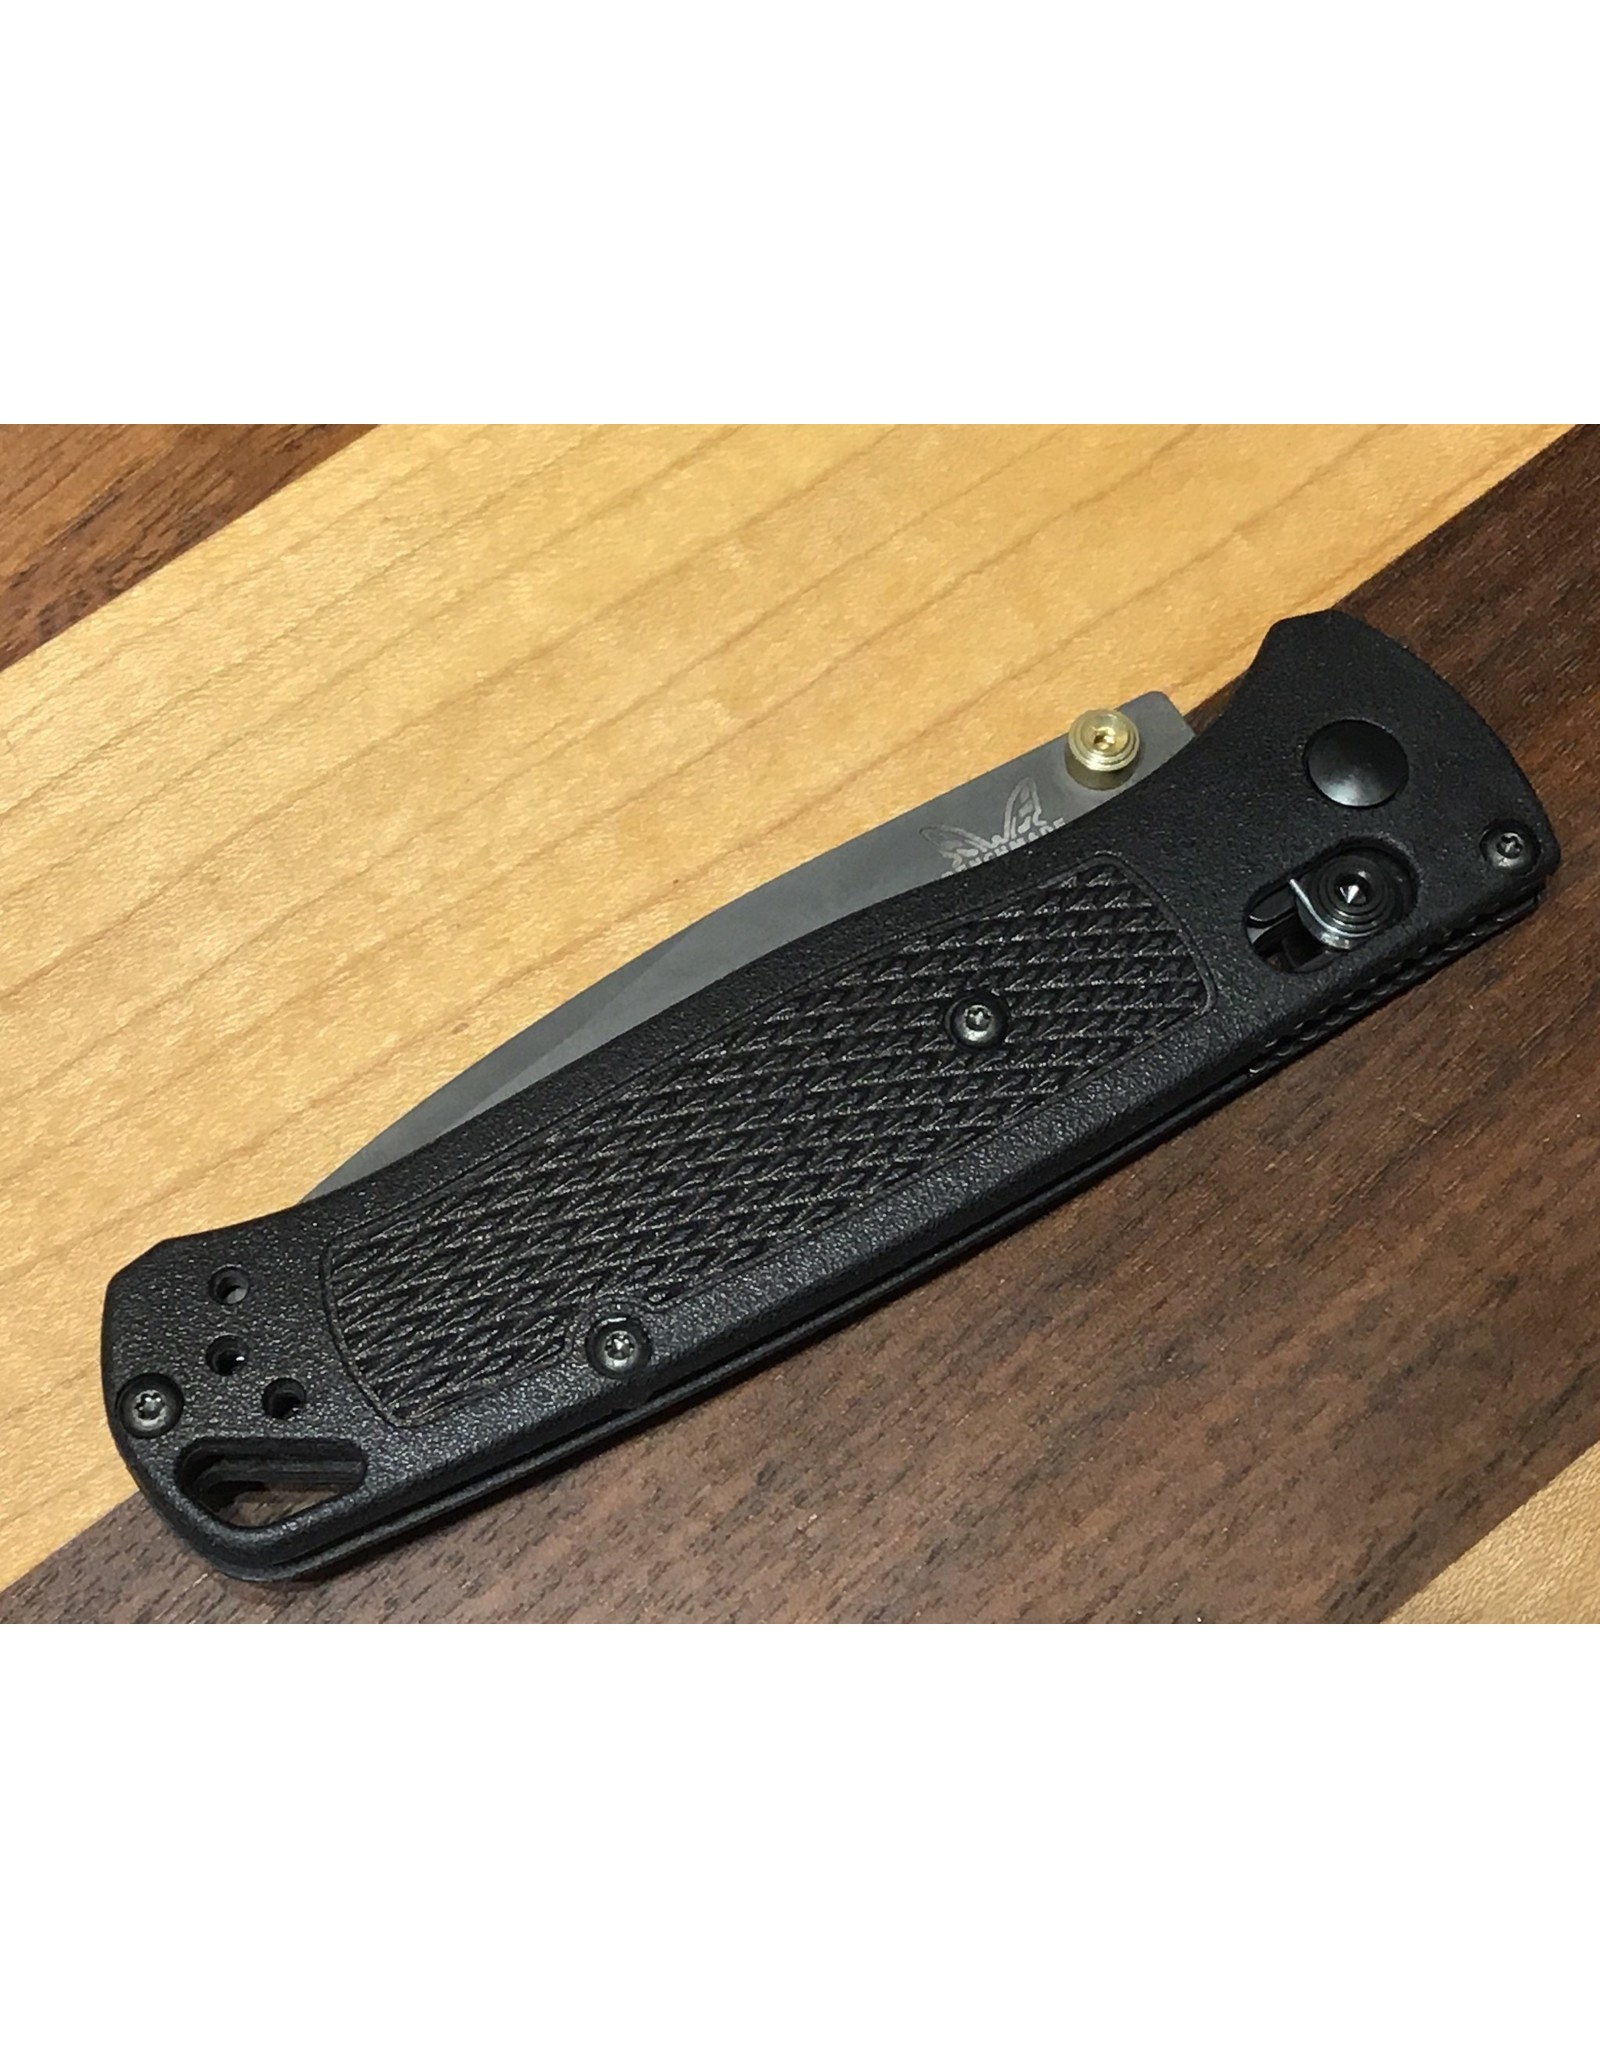 Benchmade Bugout Black & Gold 535GRY-1-BG